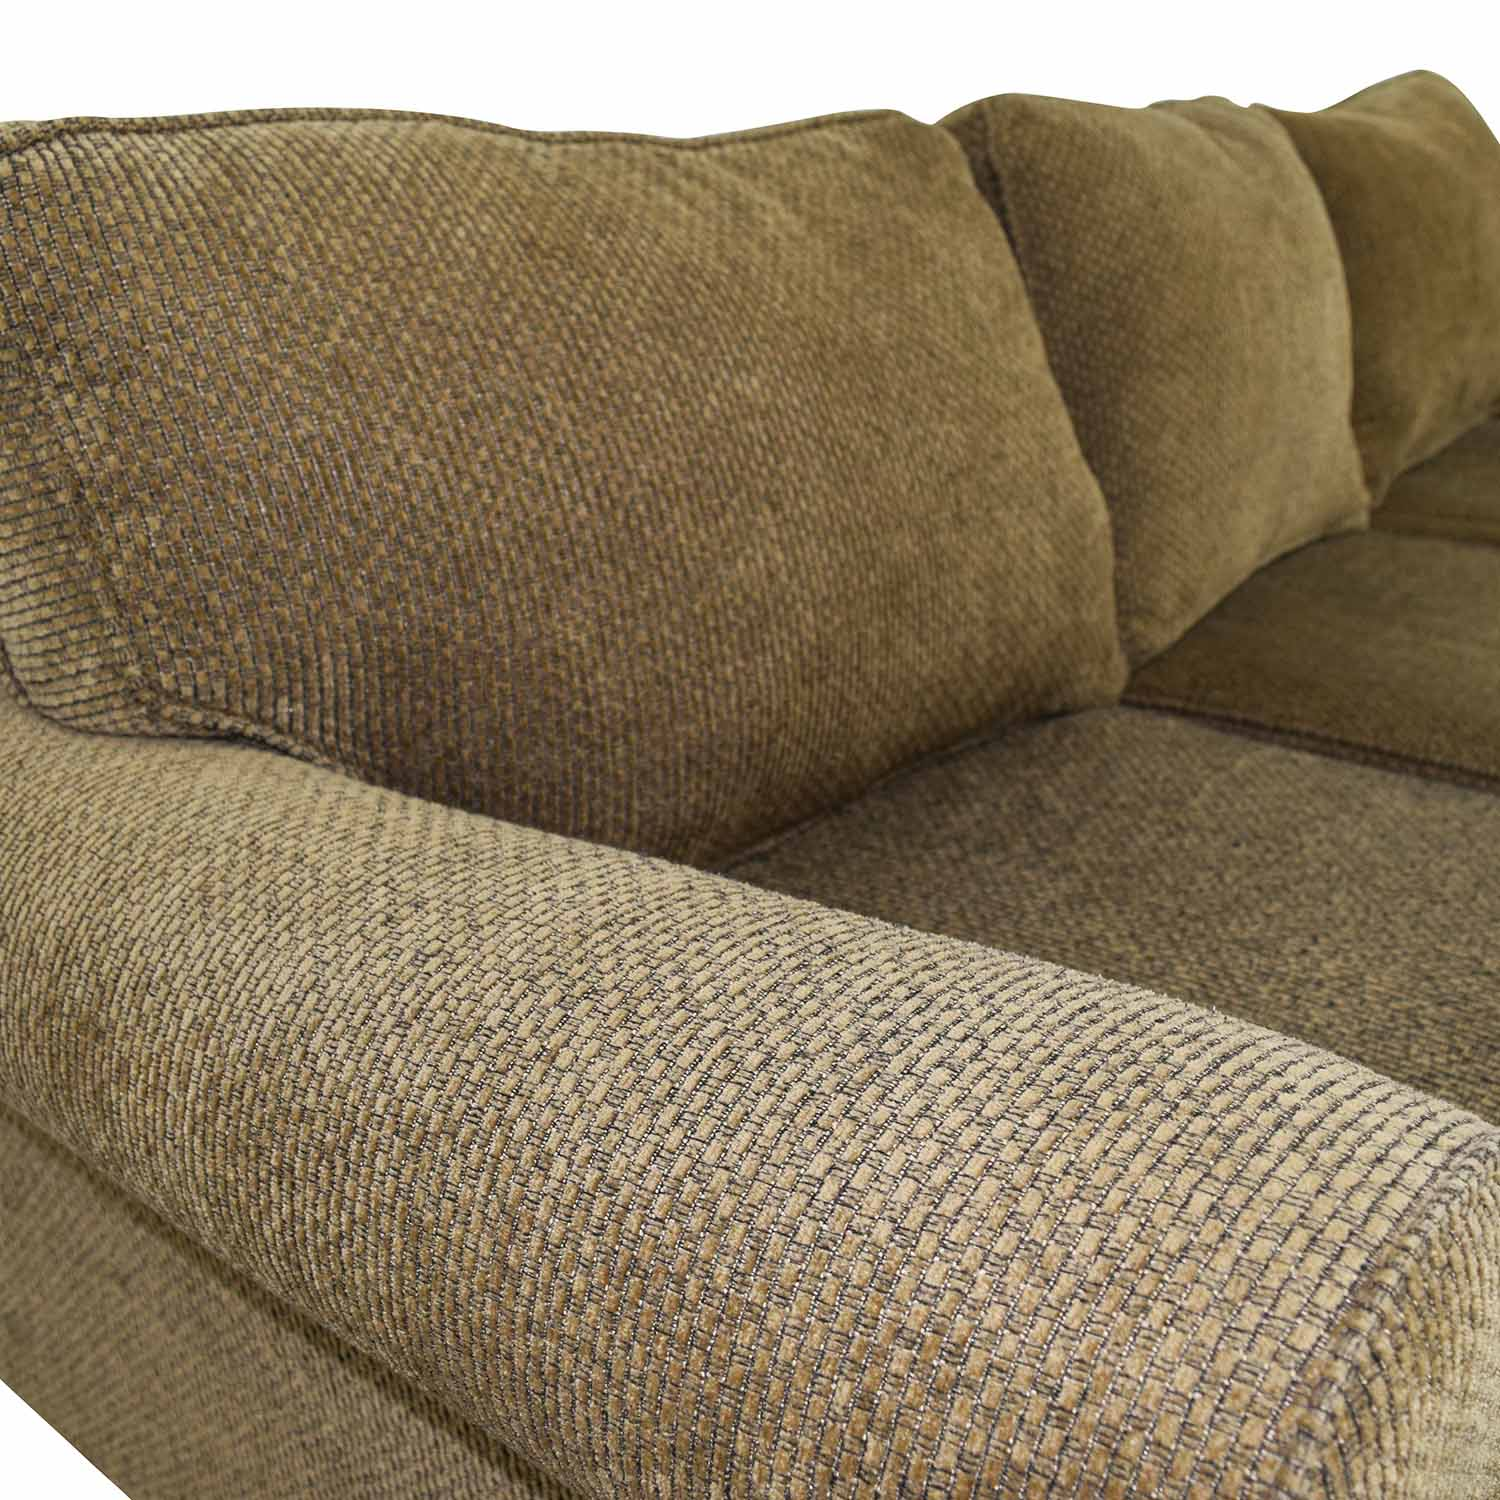 Beige Tweed Fabric Sofa